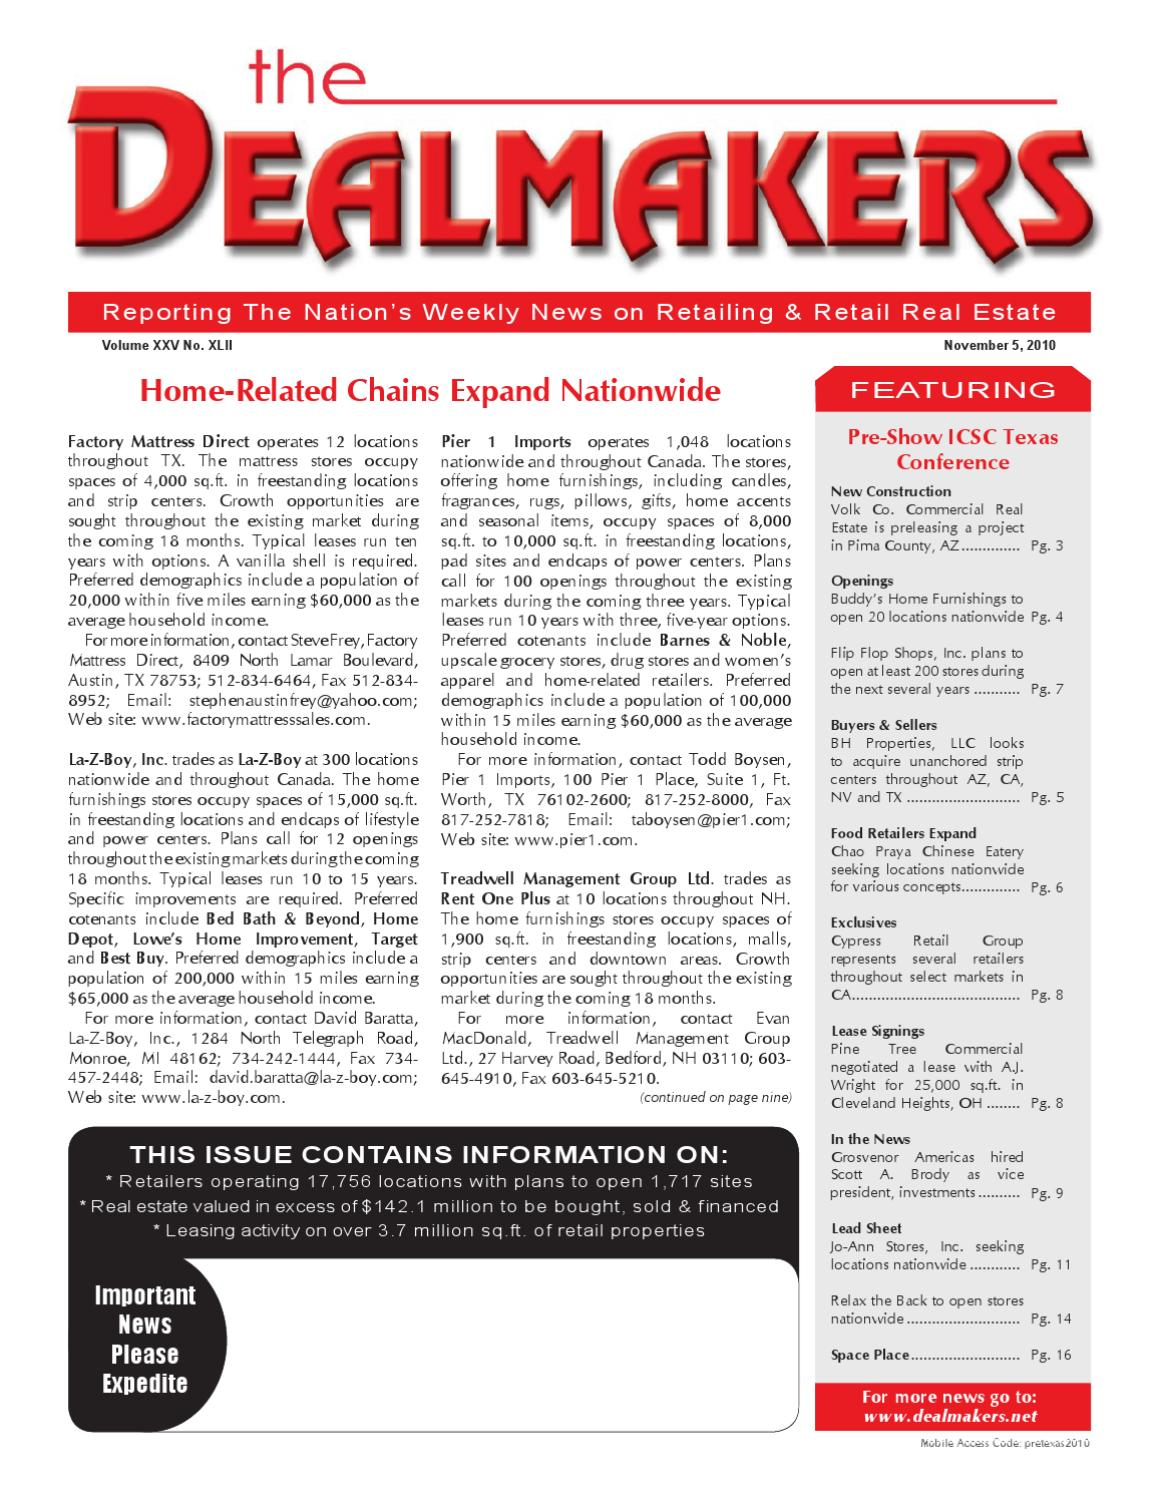 Dealmakers Magazine | November 5, 2010 by The Dealmakers Magazine ...